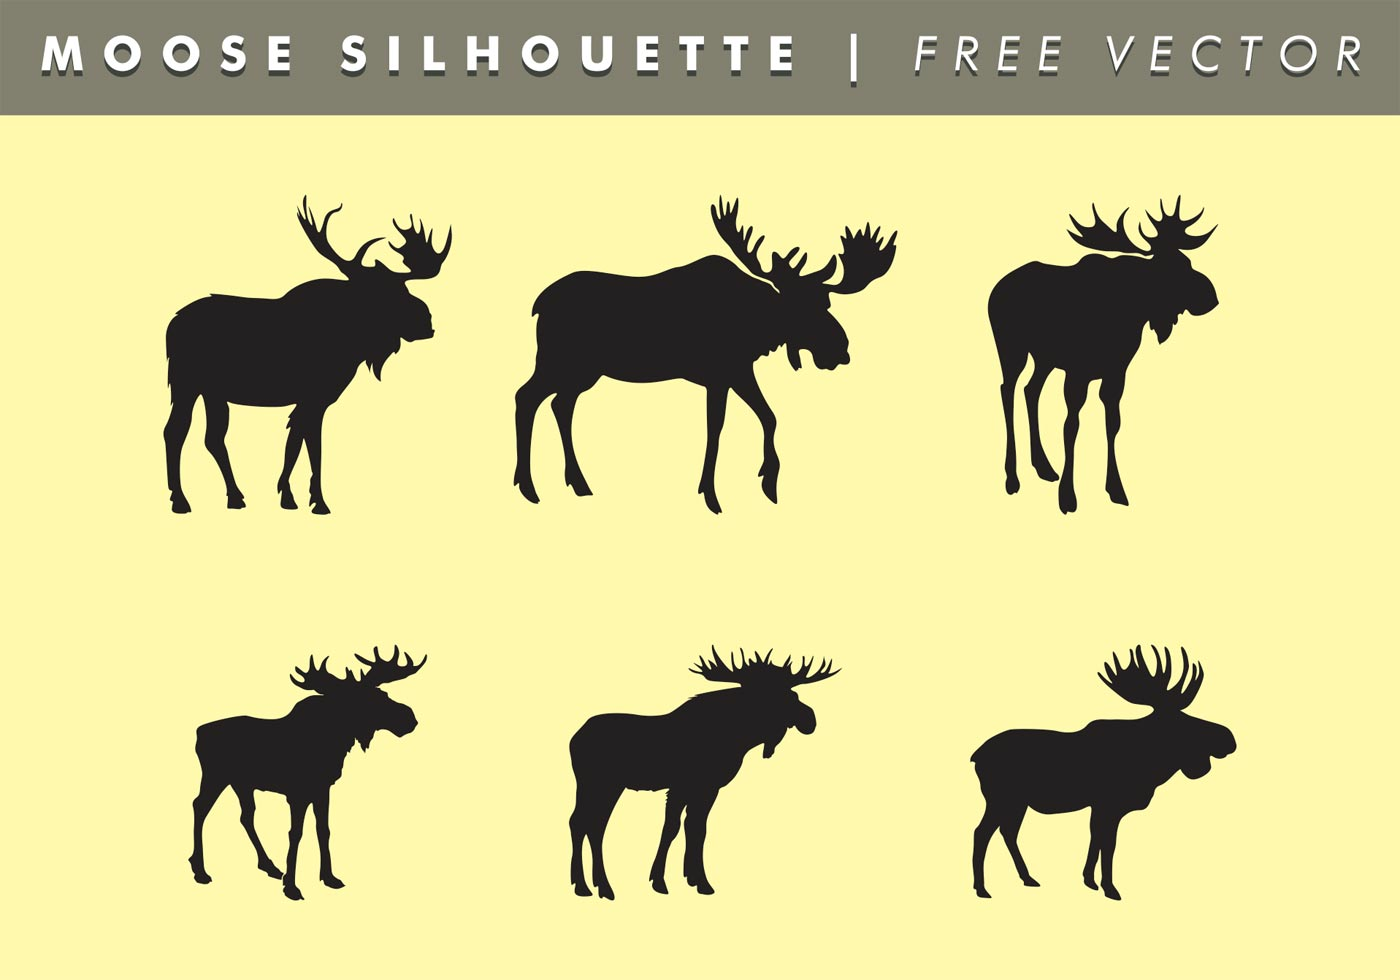 moose silhouettes moose silhouettes vector free download free vector art 5039